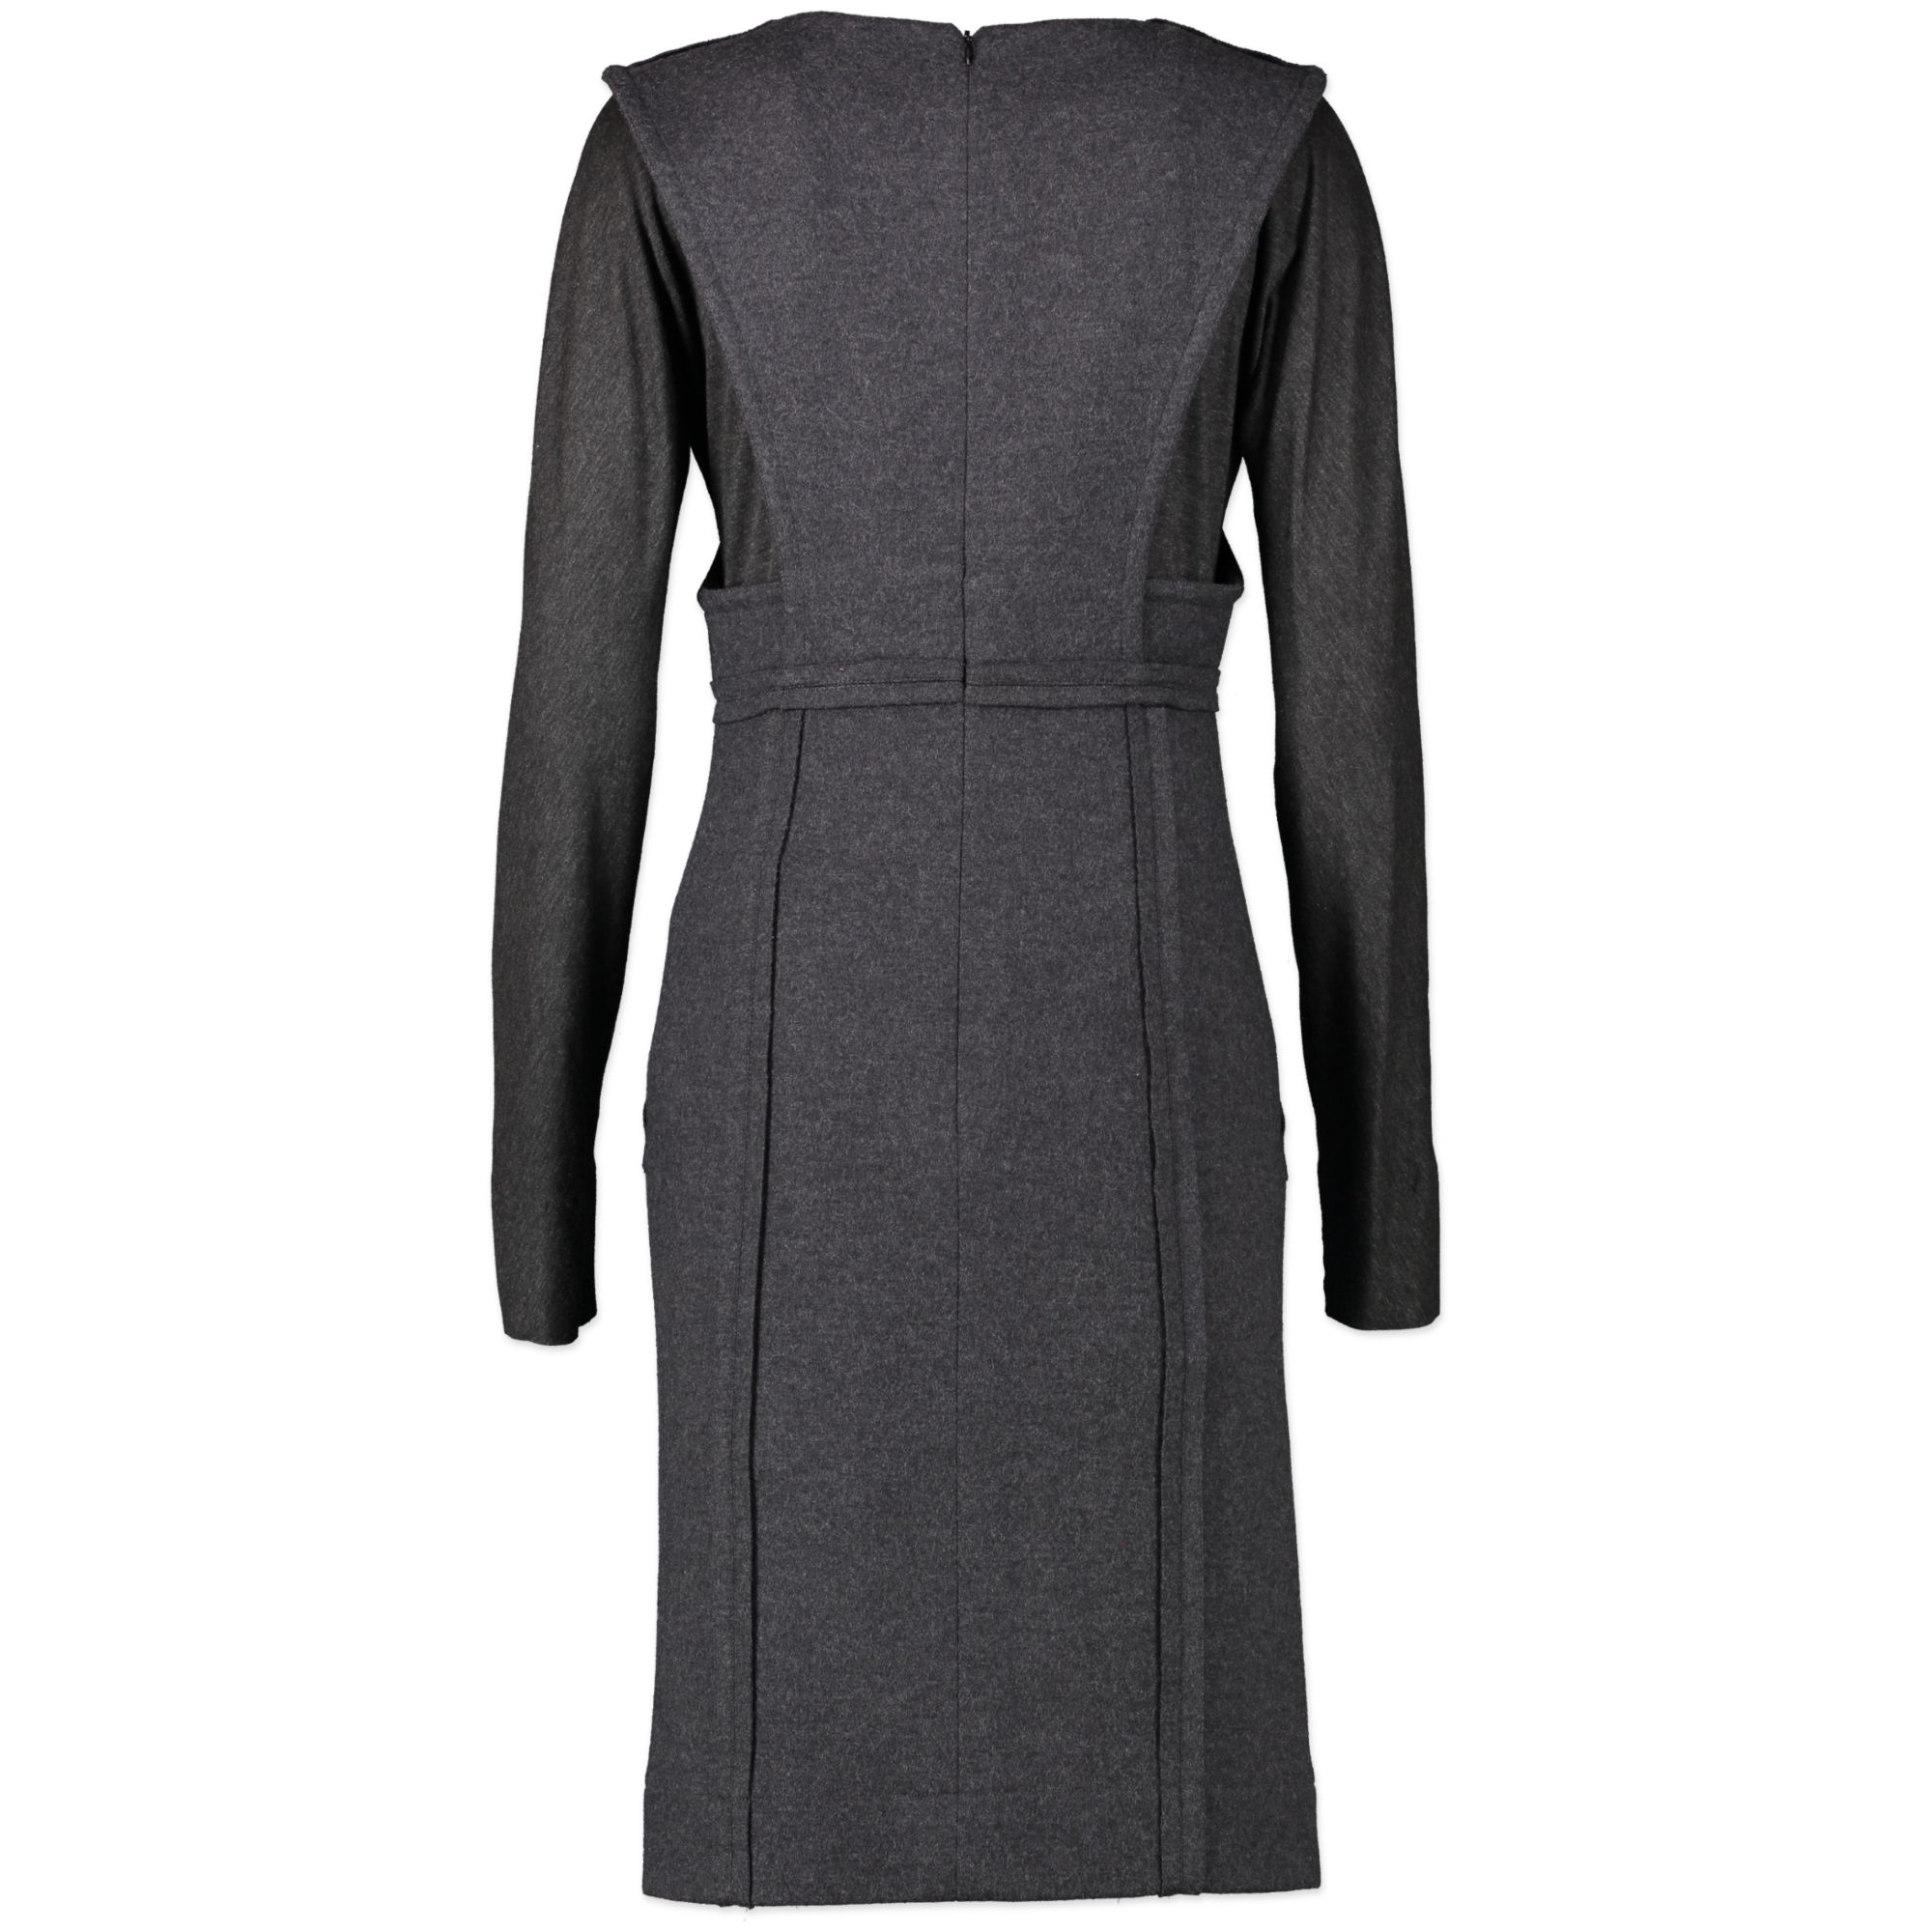 Fendi Grey Long Sleeves Knit Dress - size 38